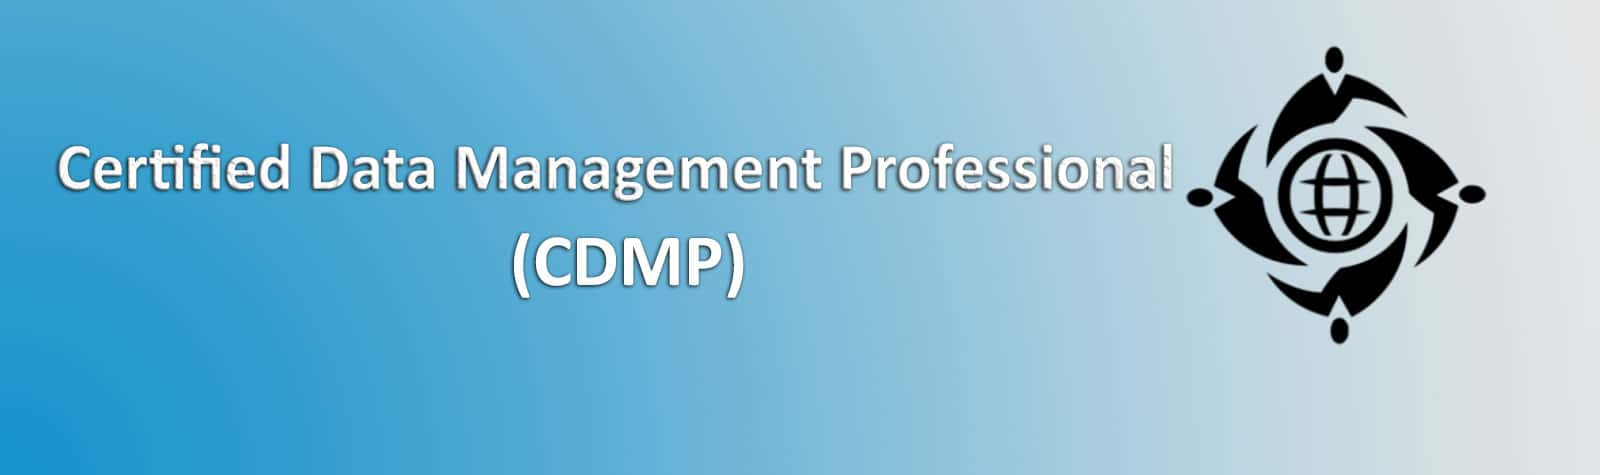 Certified Data Management Professional (CDMP) Introduction